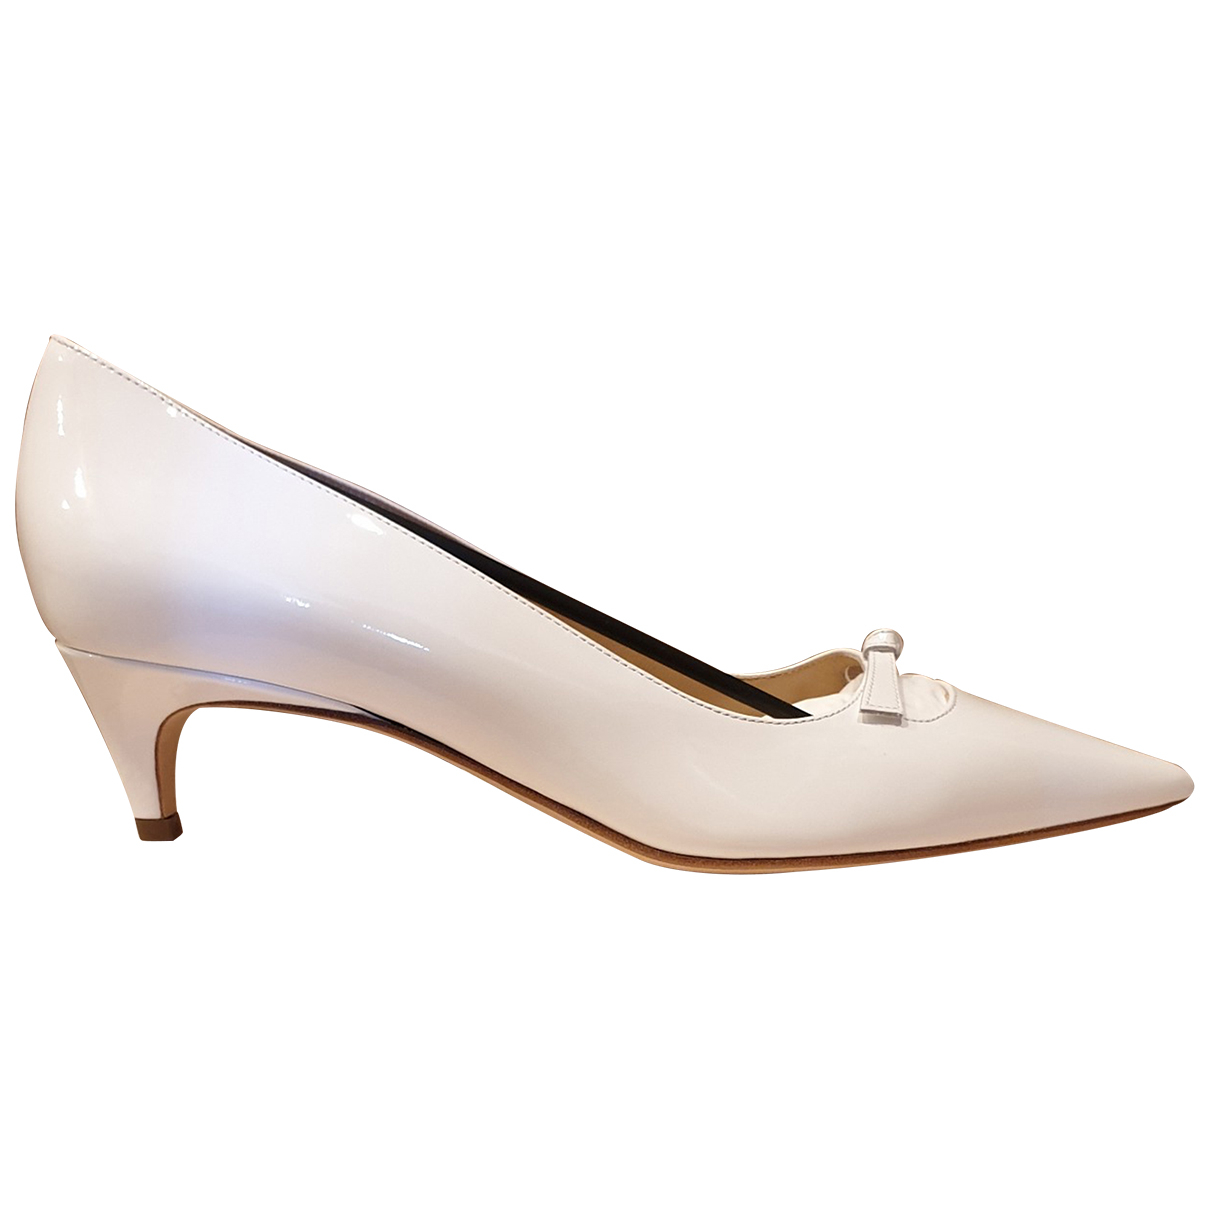 Sergio Rossi \N White Patent leather Heels for Women 41 IT